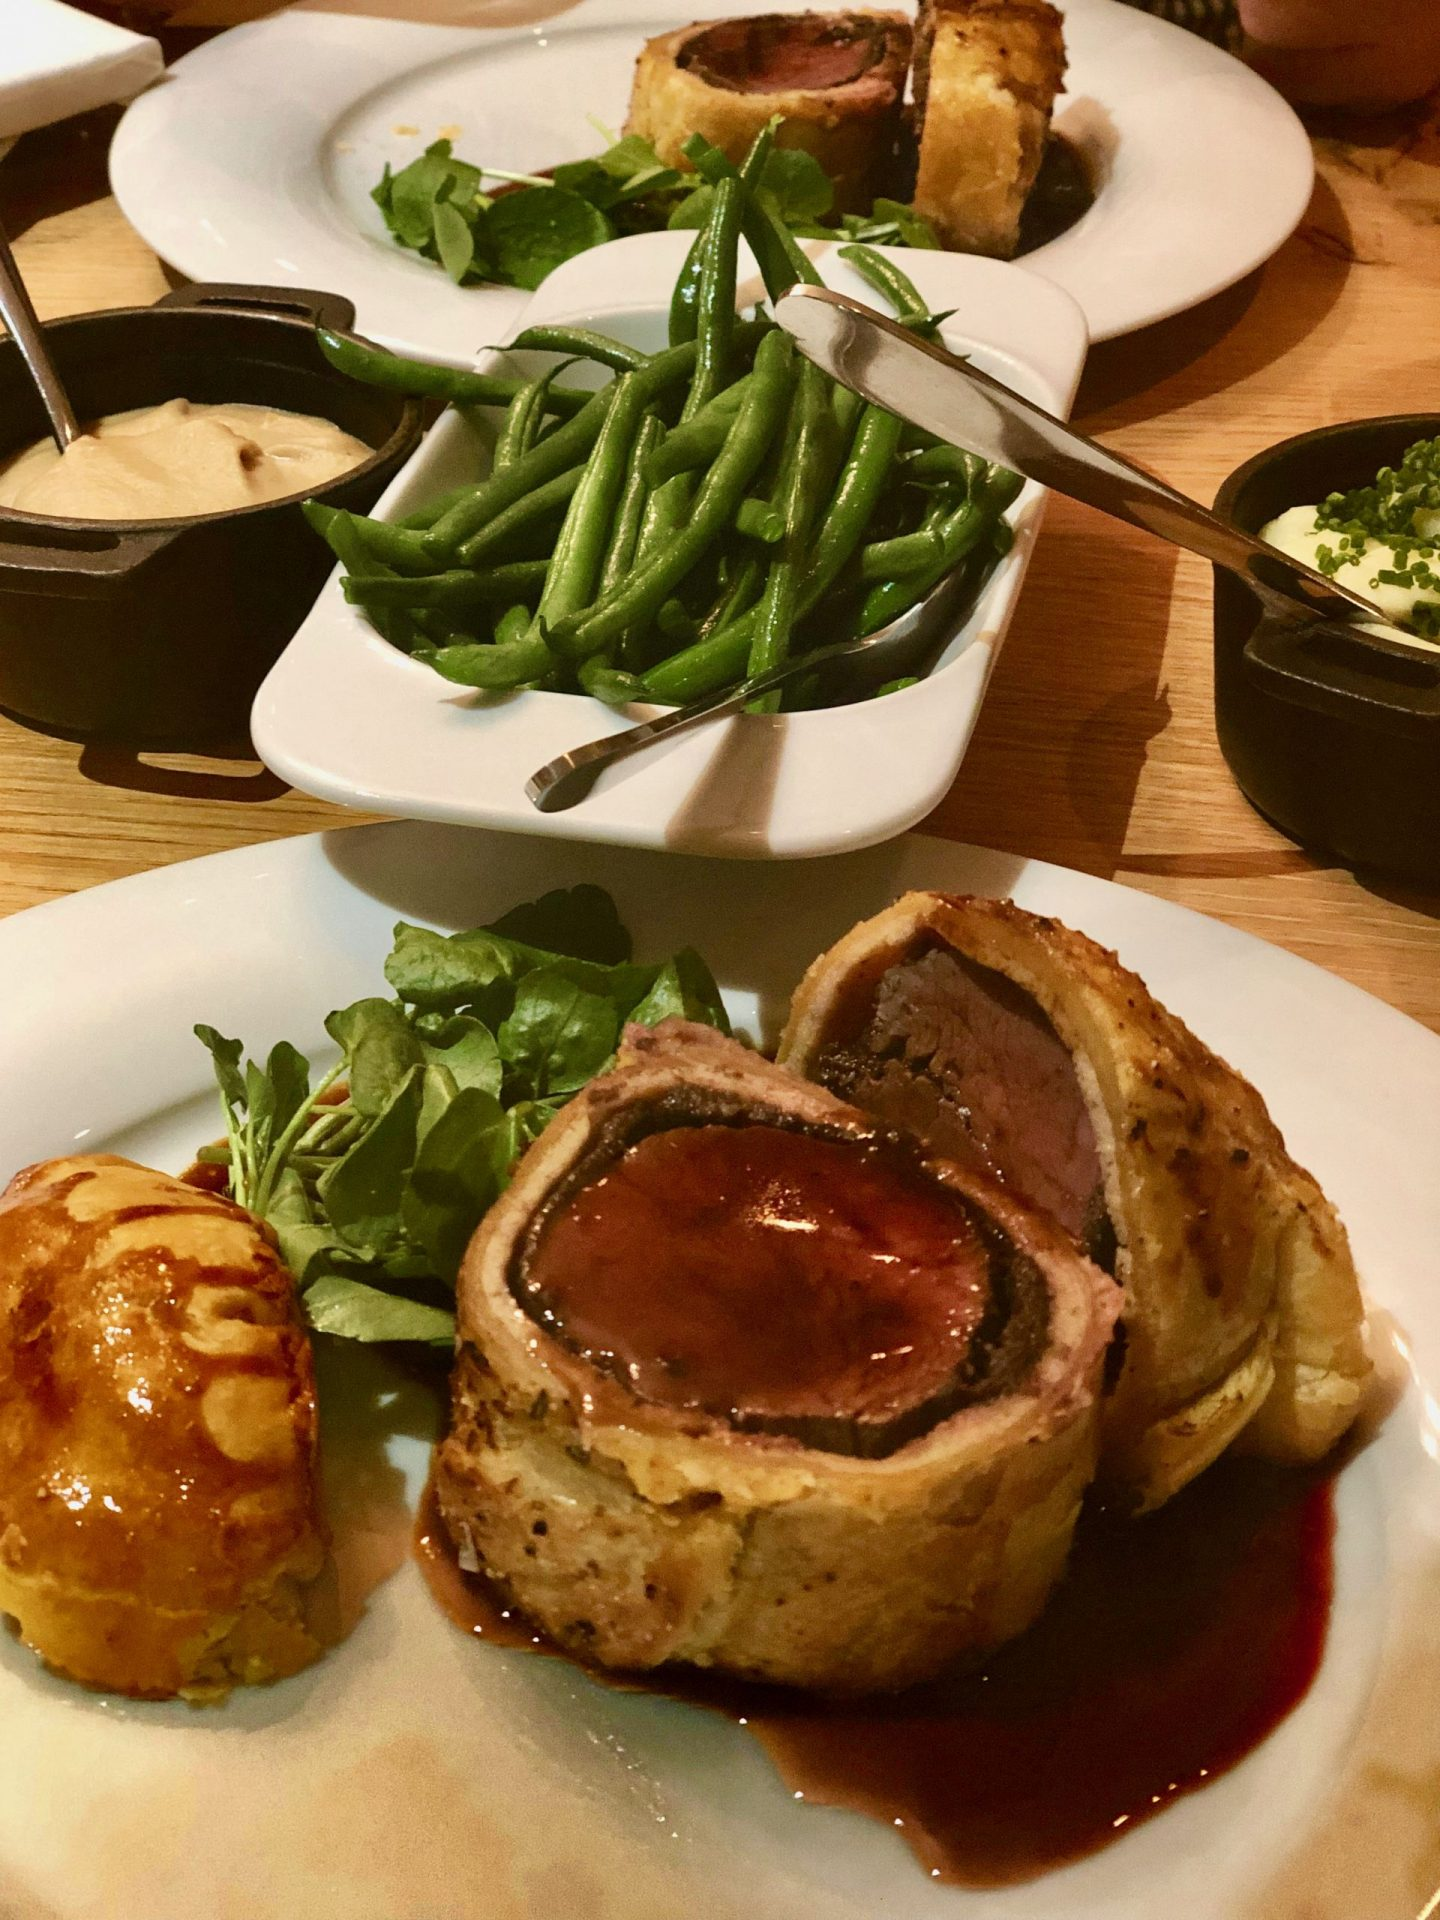 Dinner at the black swan helmsley. A white round plate contains two thich slices of beef wellington with a rich gravy poured over the top. Behind that is a dish of green beans, of mash and of celeriac puree, each with a spoon.